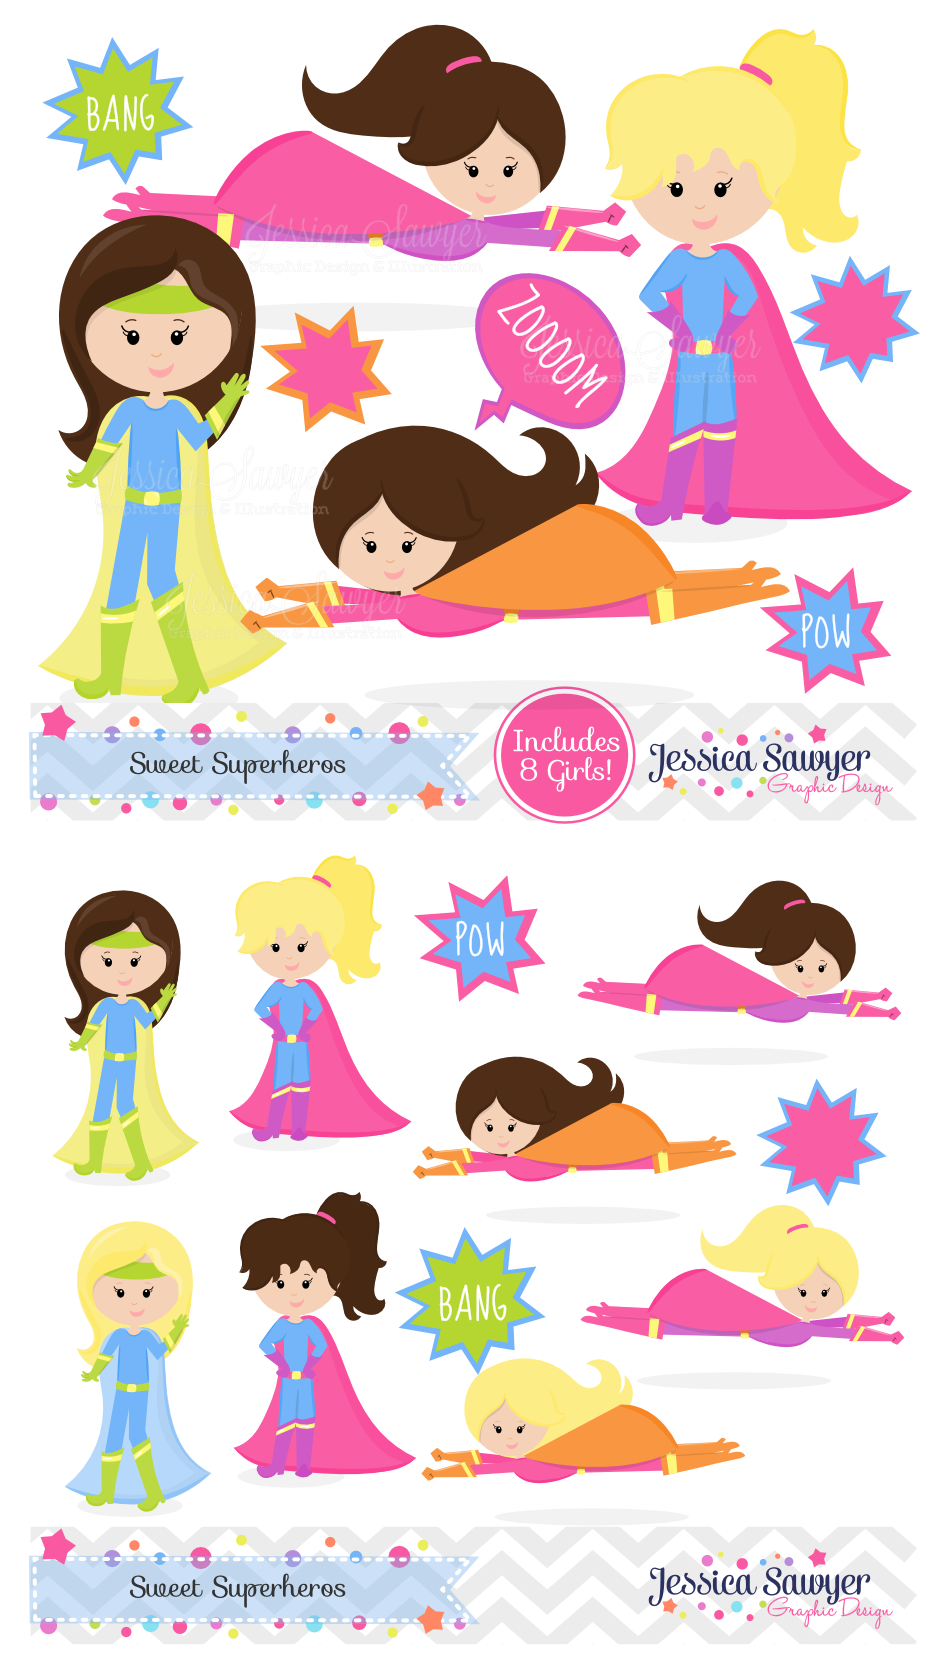 superhero clipart and vectors for a girls superhero party or products superhero clipart girl [ 948 x 1673 Pixel ]